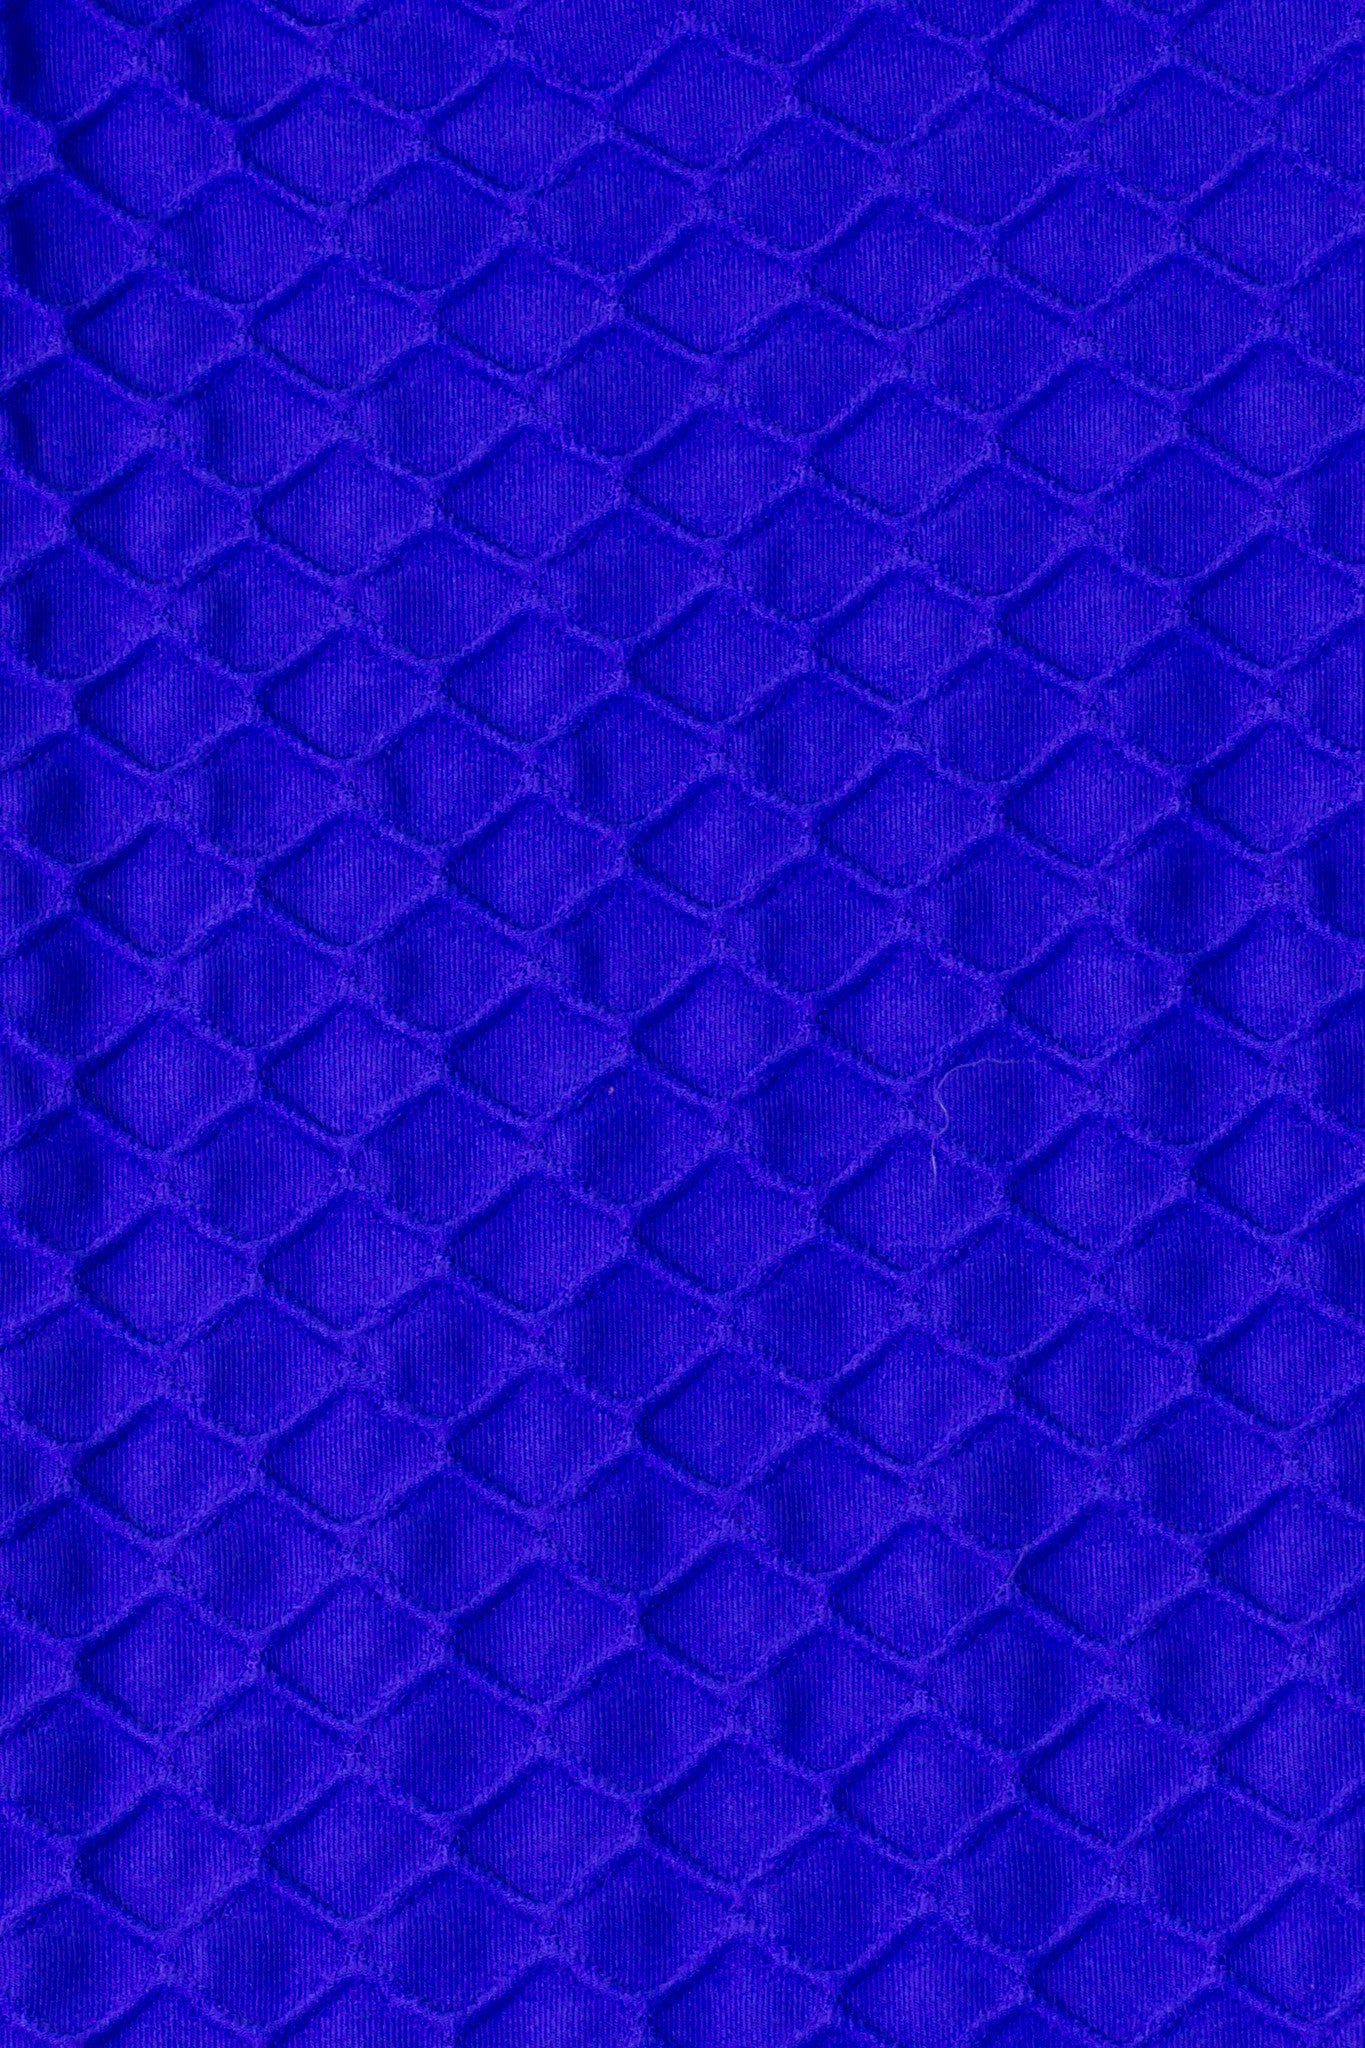 Legging Full Length Wallpaper - Amni, Royal Blue